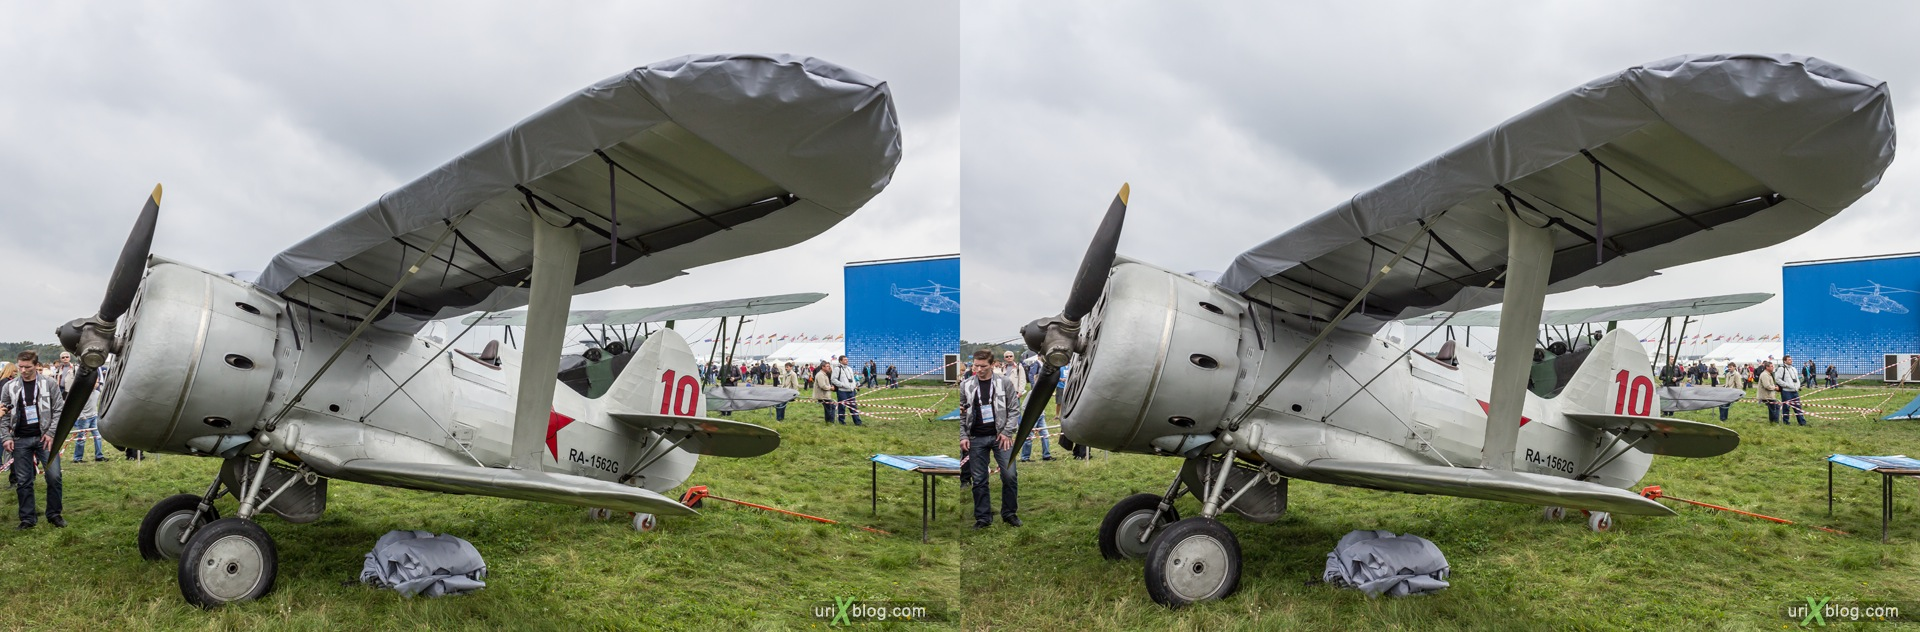 2013, I-15, MAKS, International Aviation and Space Salon, Russia, Ramenskoye airfield, airplane, 3D, stereo pair, cross-eyed, crossview, cross view stereo pair, stereoscopic